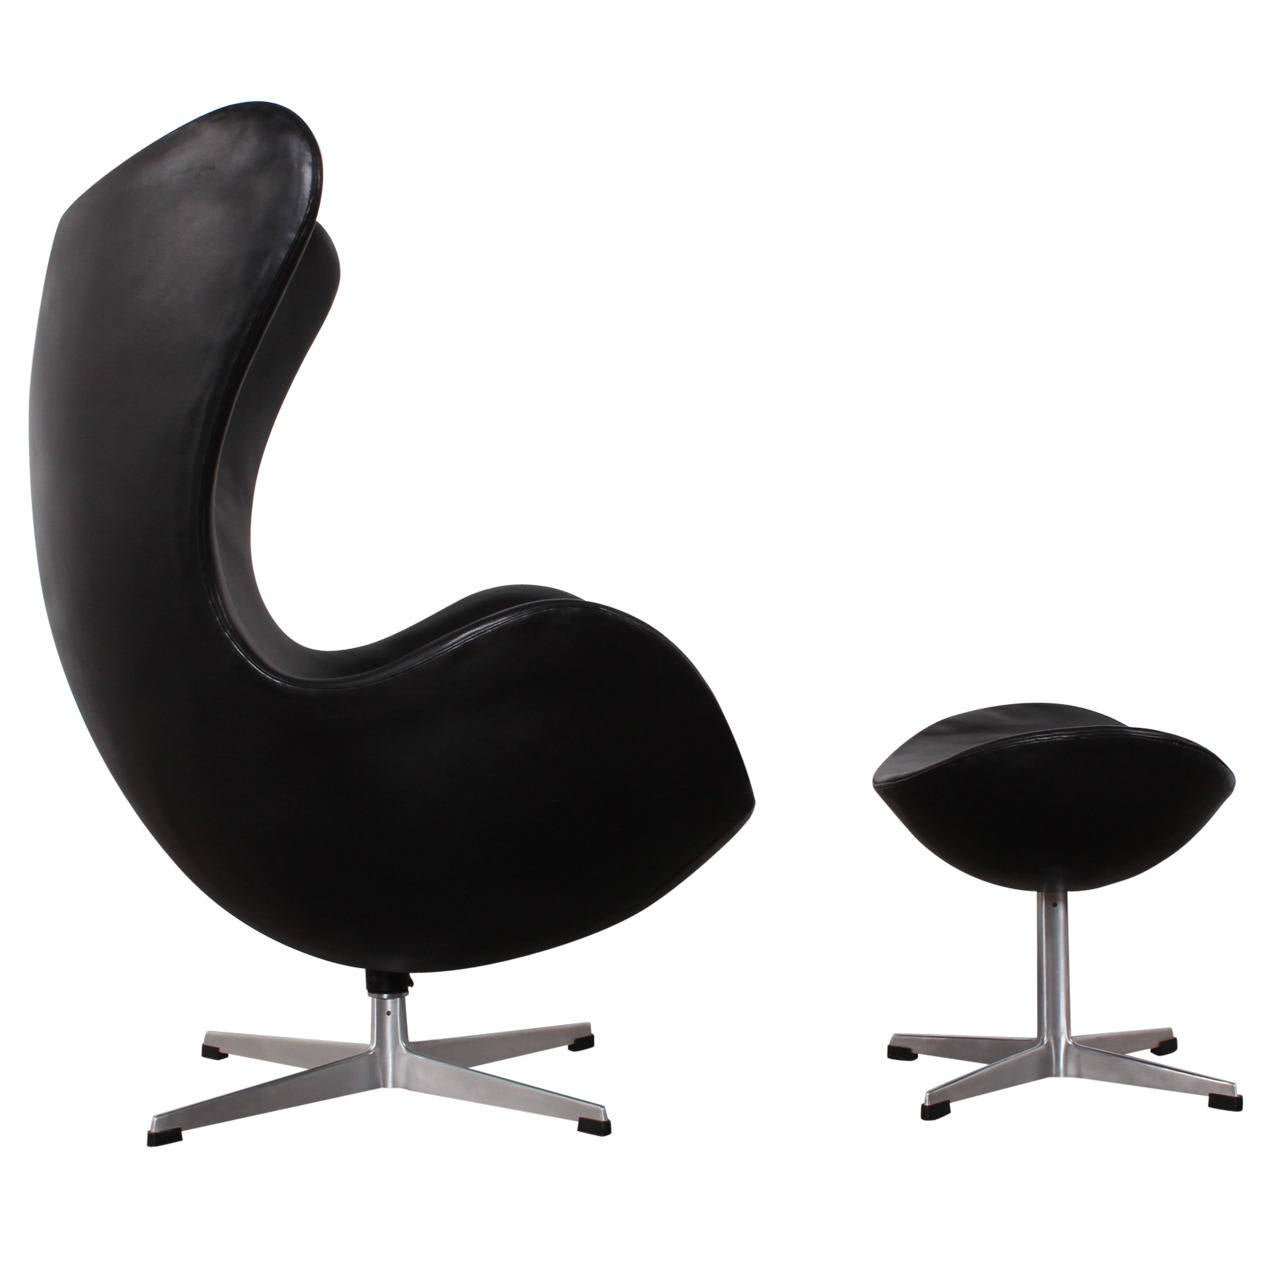 Egg chair and ottoman by arne jacobsen in original leather for Egg chair jacobsen